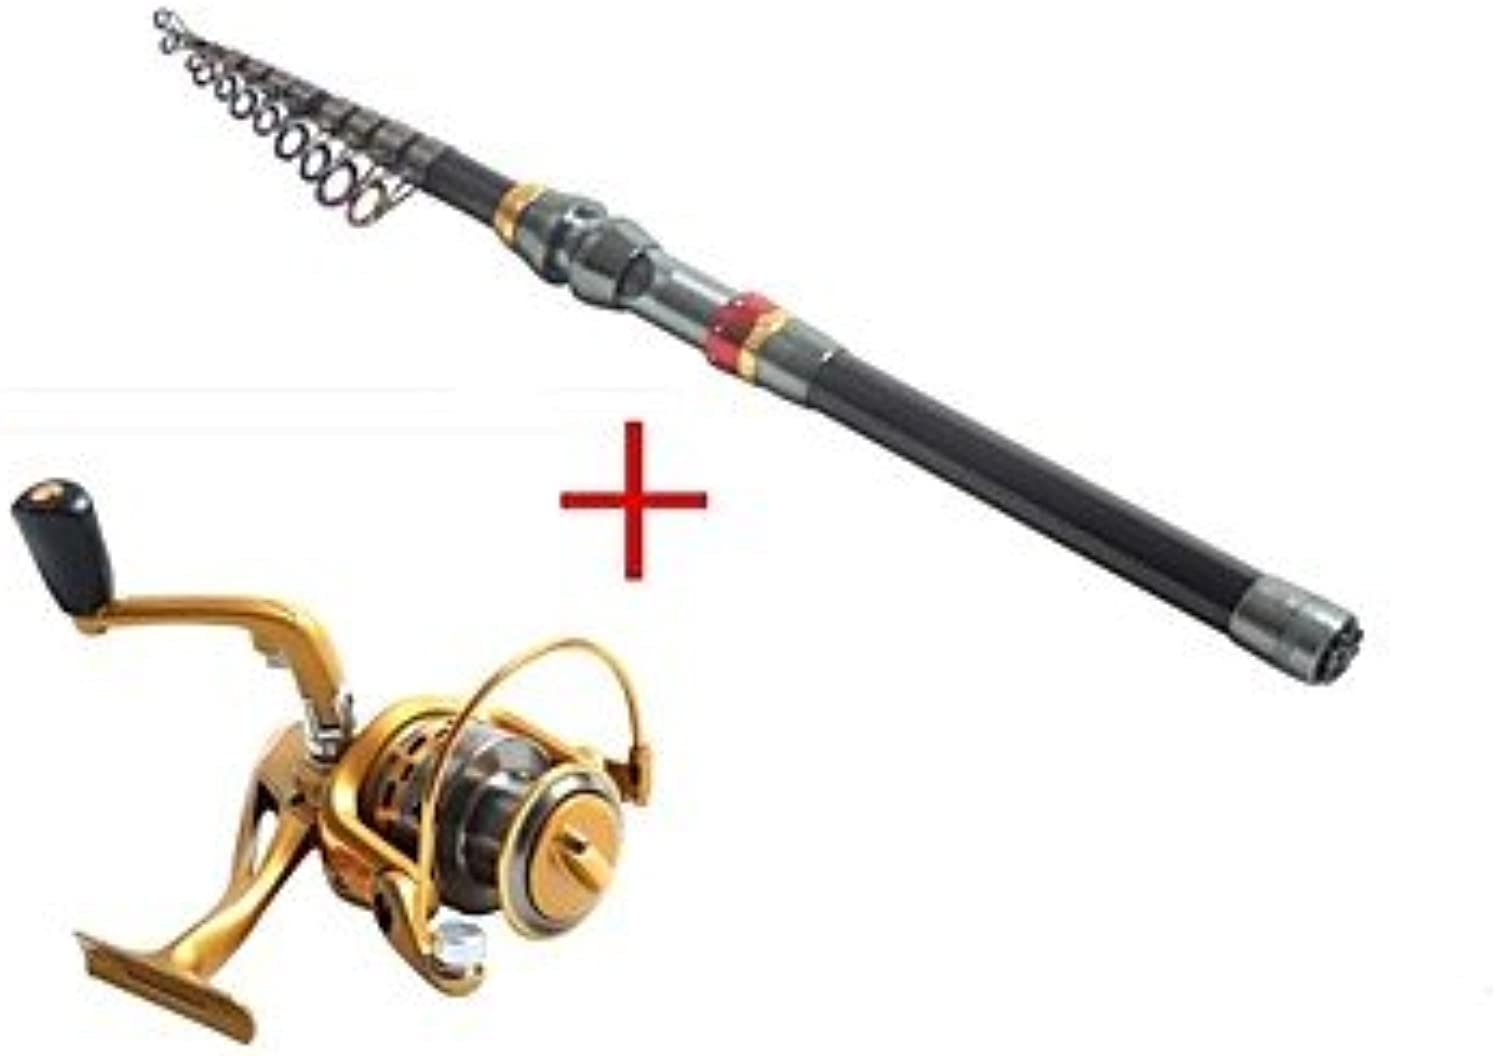 RTS Telespin Rod Fishing Rod + Reel Fishing Rod Telespin Rod Carbon 360 M Sea Fishing Rod & Reel Combos Black